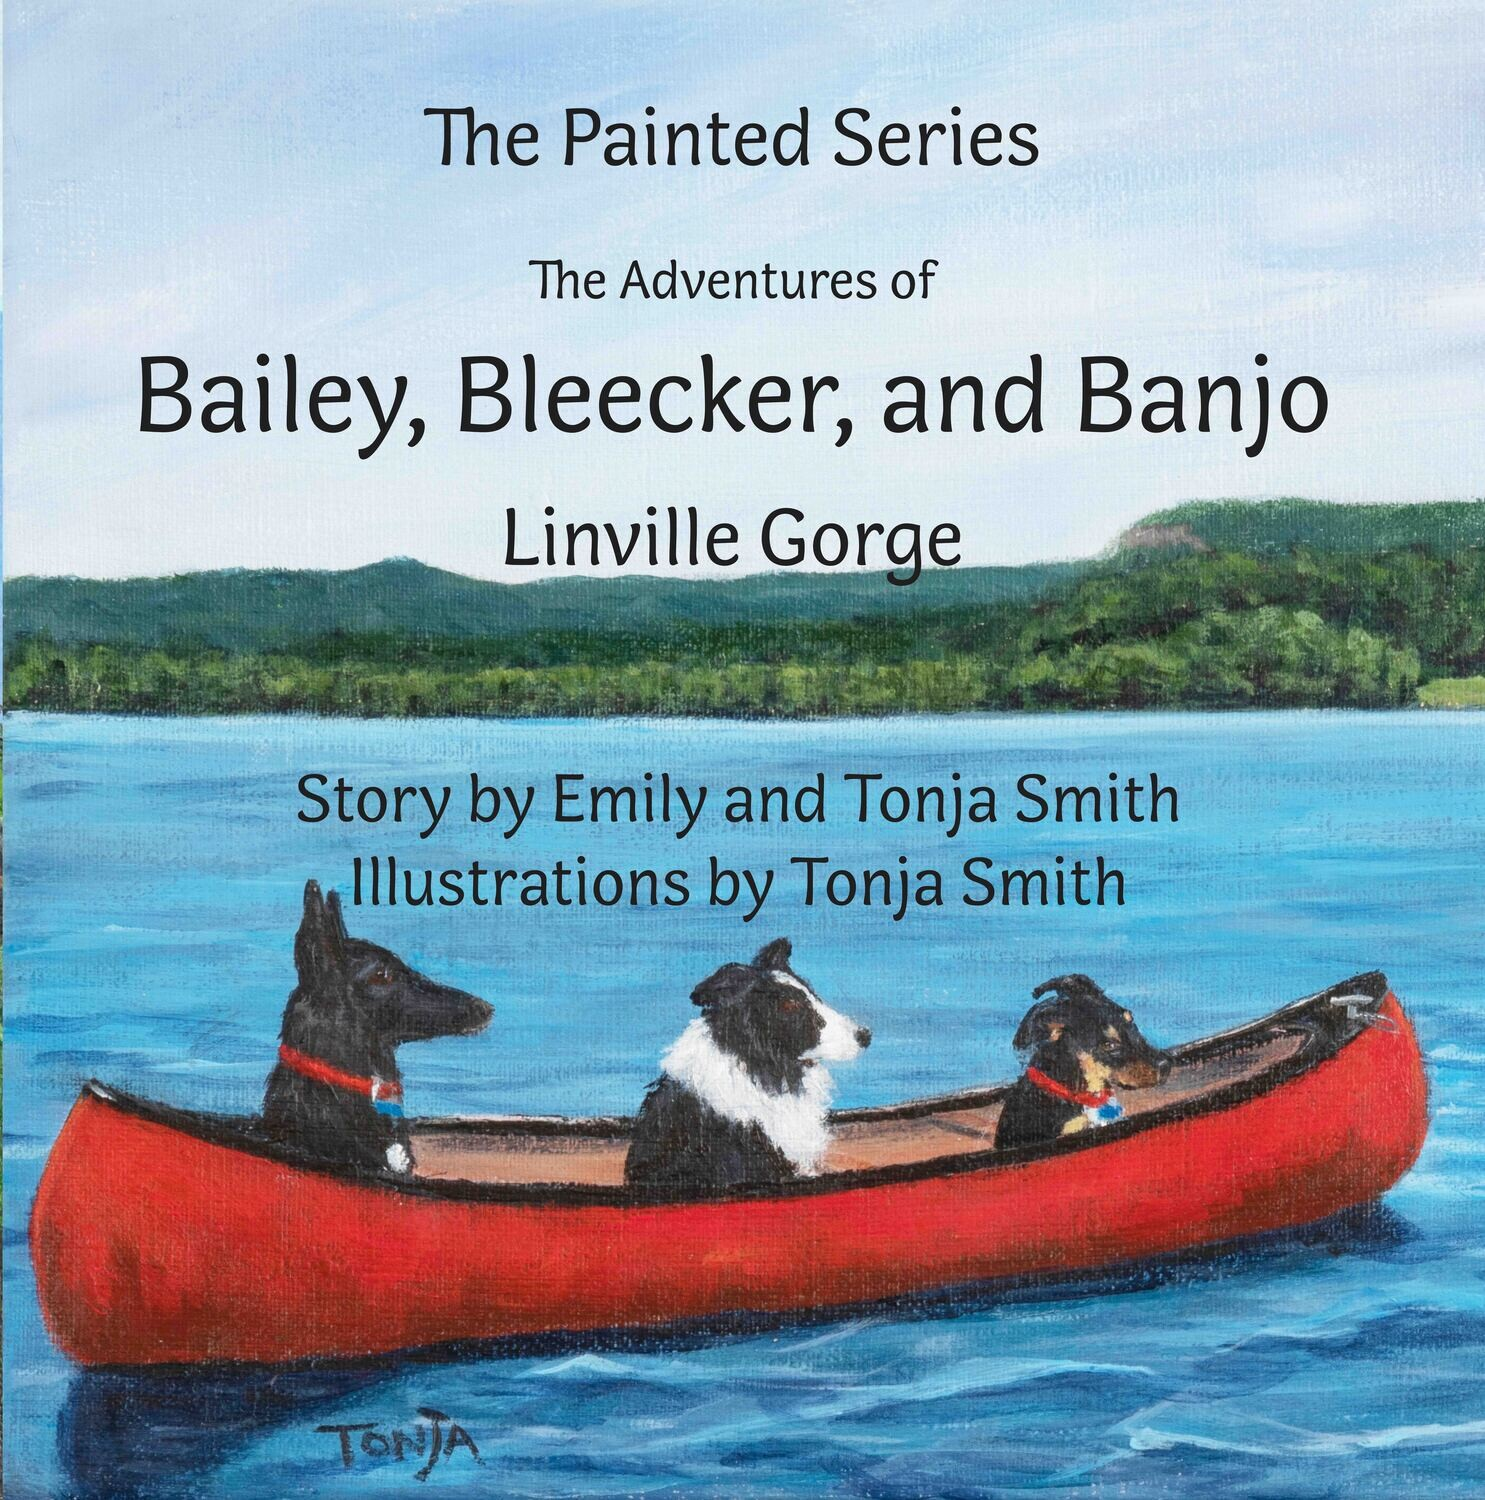 Bailey, Bleecker, and Banjo: Linville Gorge